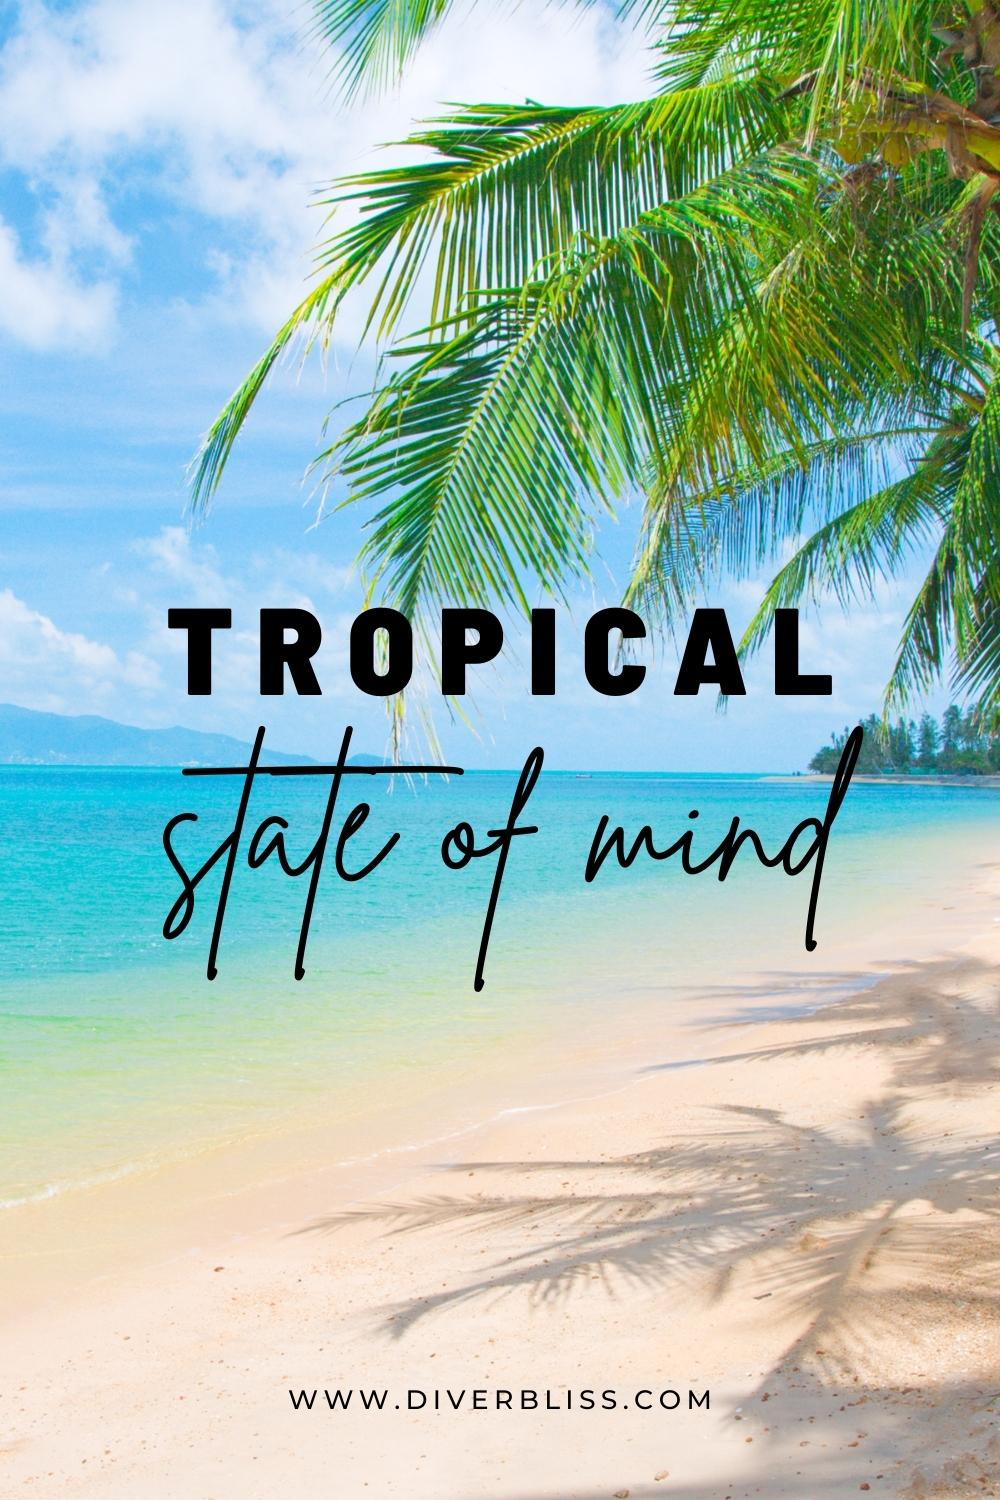 Tropical state of mind.